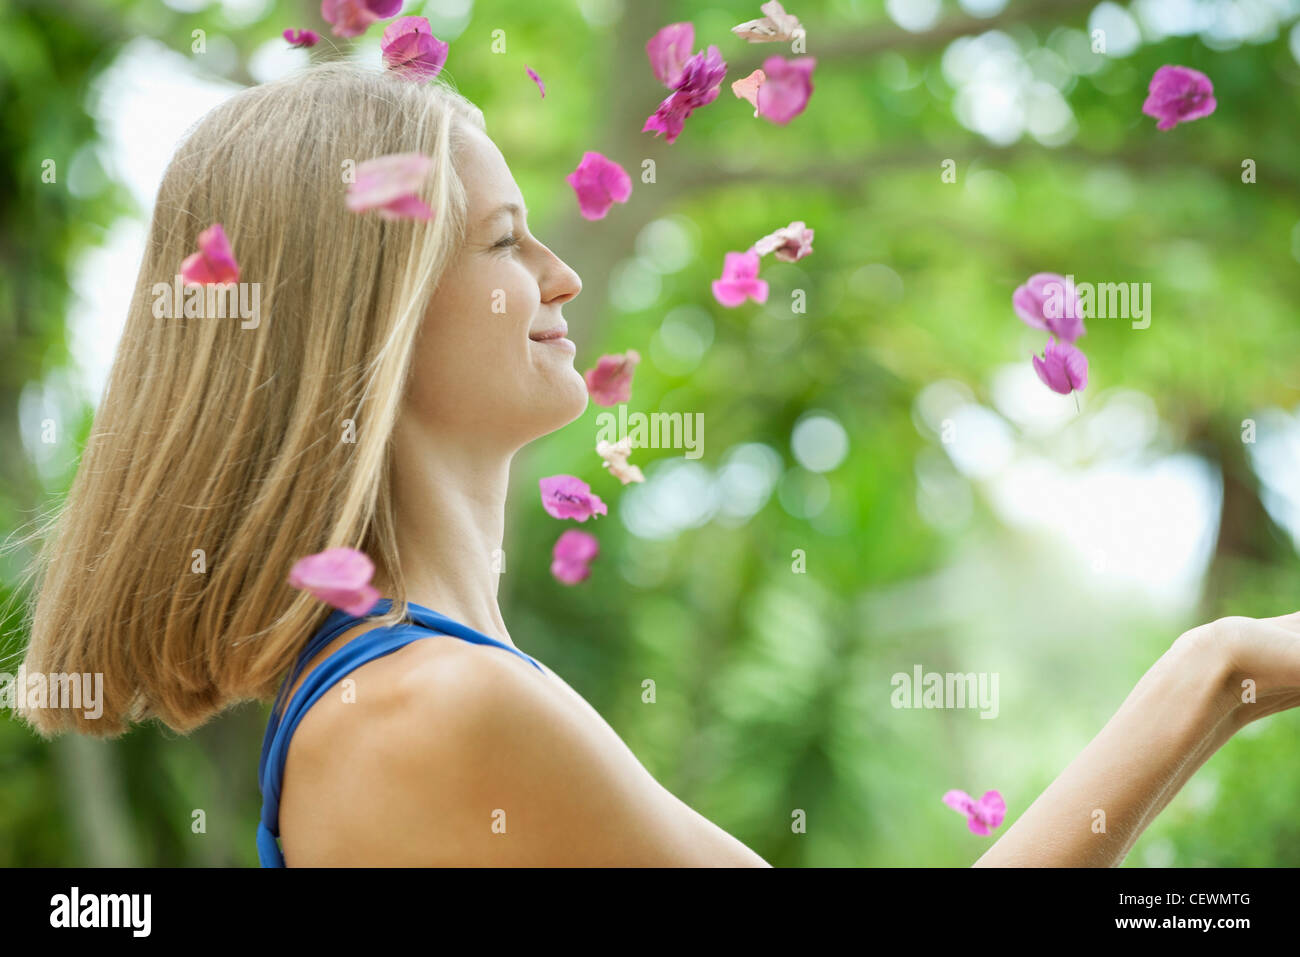 Young woman throwing petals in air, side view - Stock Image